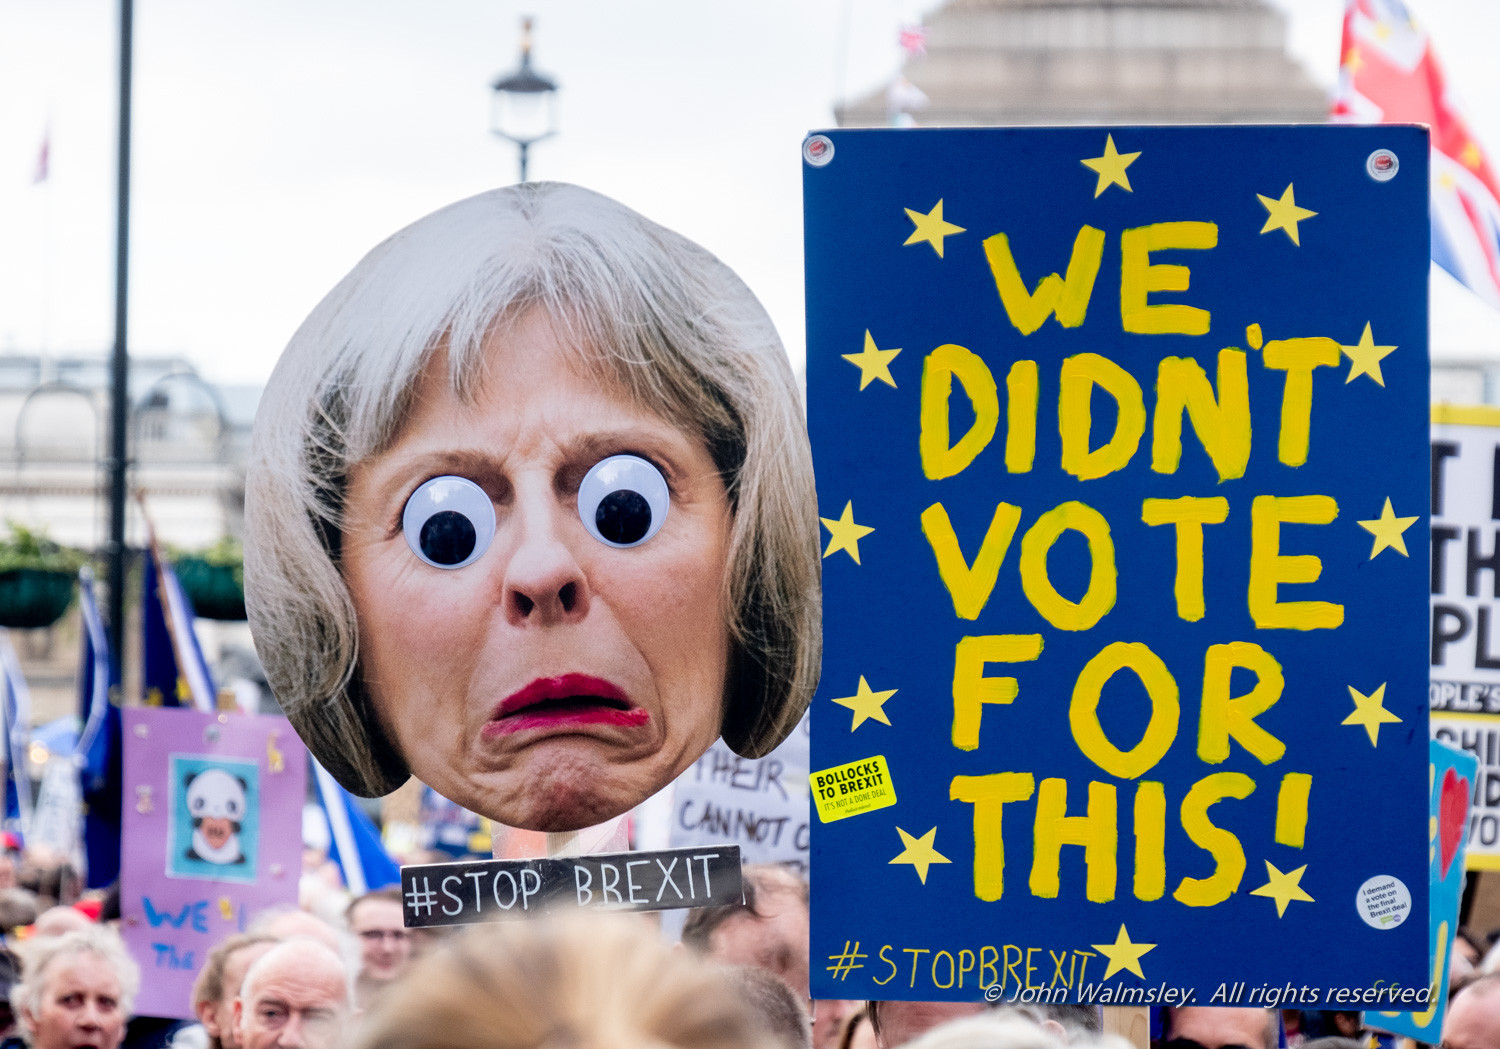 #124540  Caricature of Theresa May, Anti-